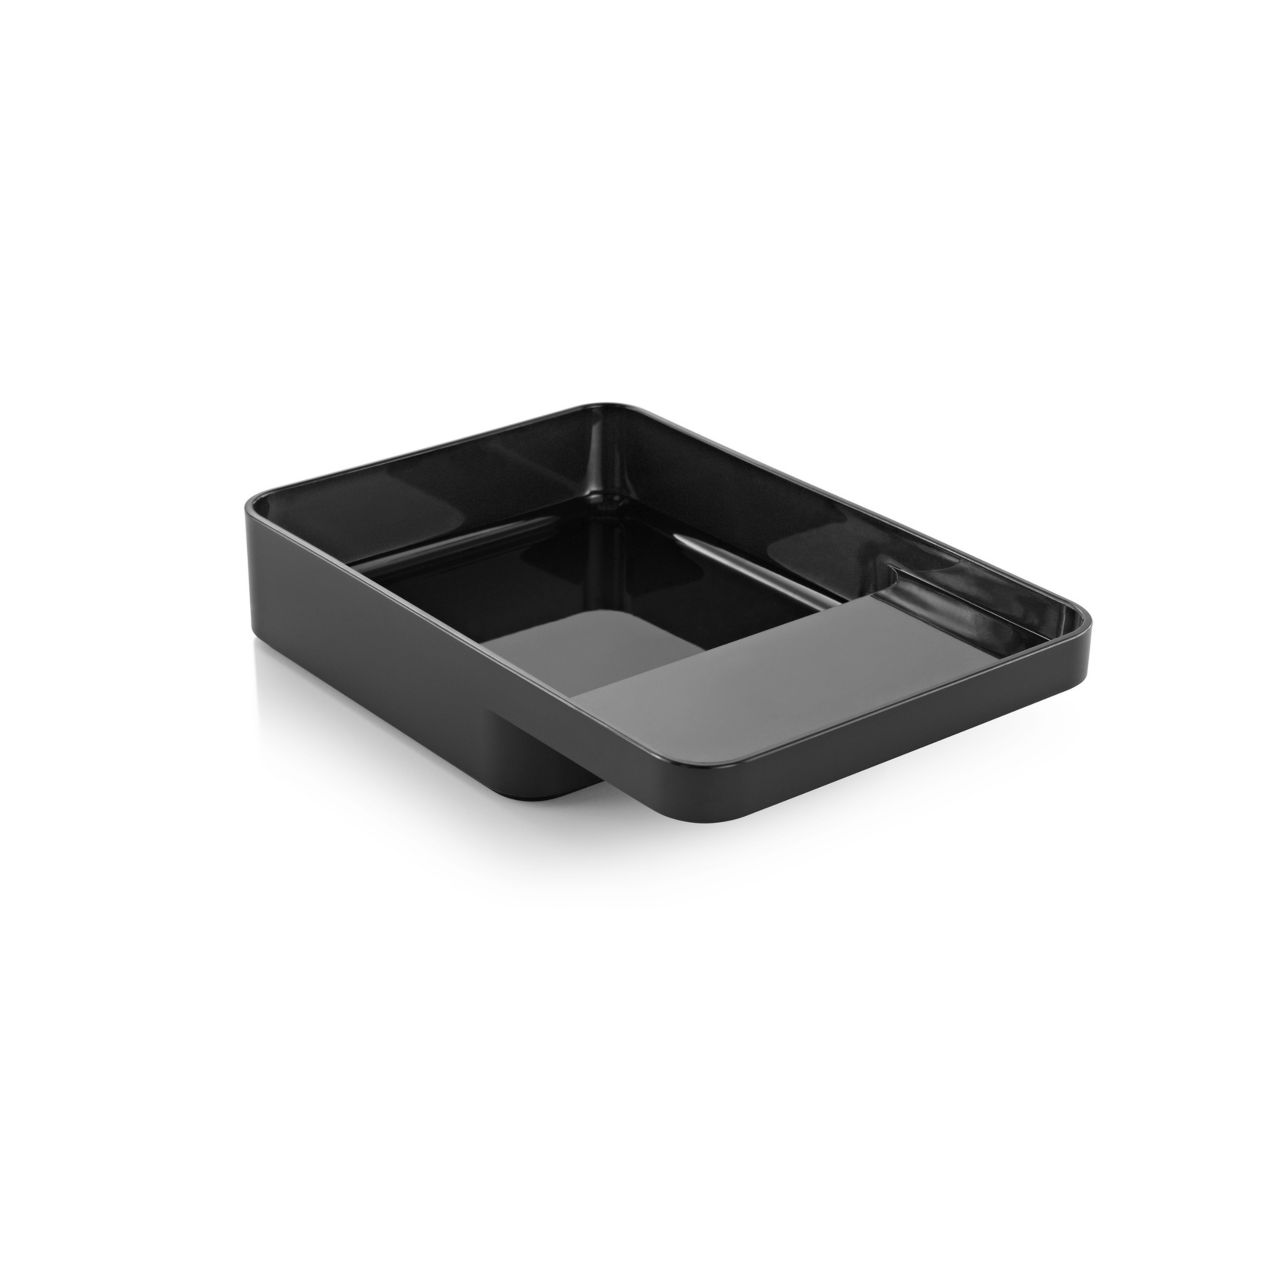 Formwork Large Tray in Onyx by Herman Miller